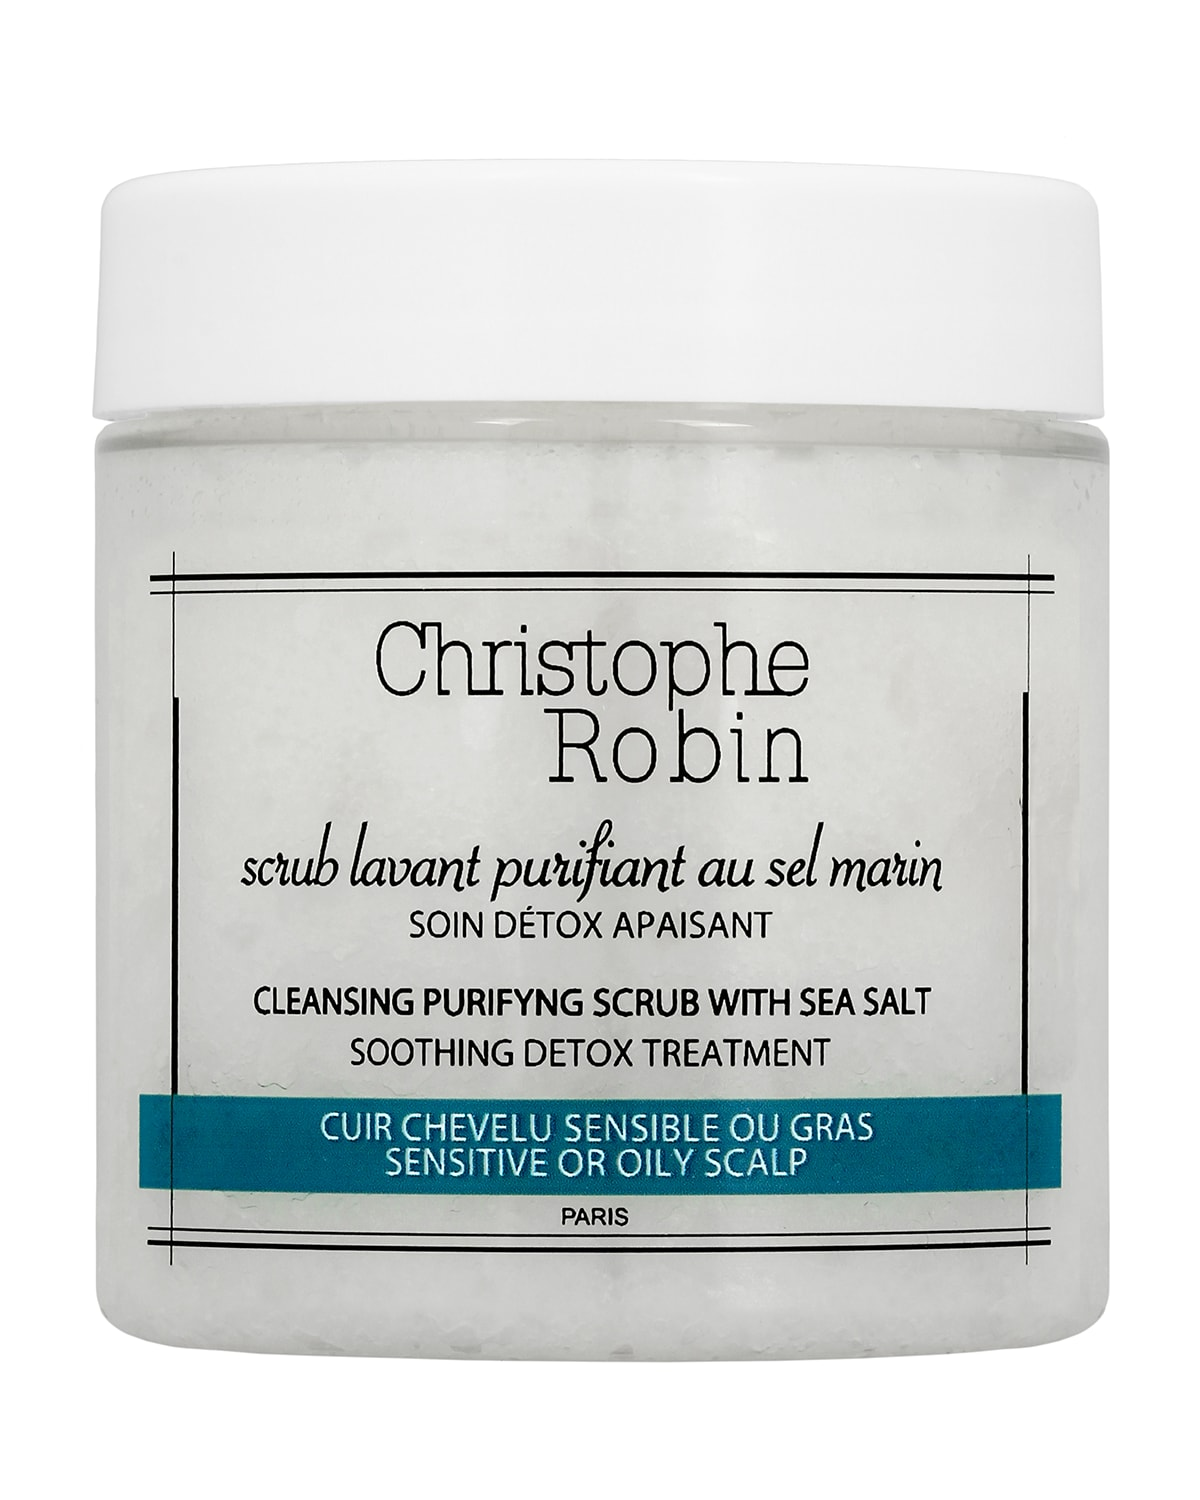 2.7 oz. Cleansing Purifying Scrub with Sea Salt Travel Size